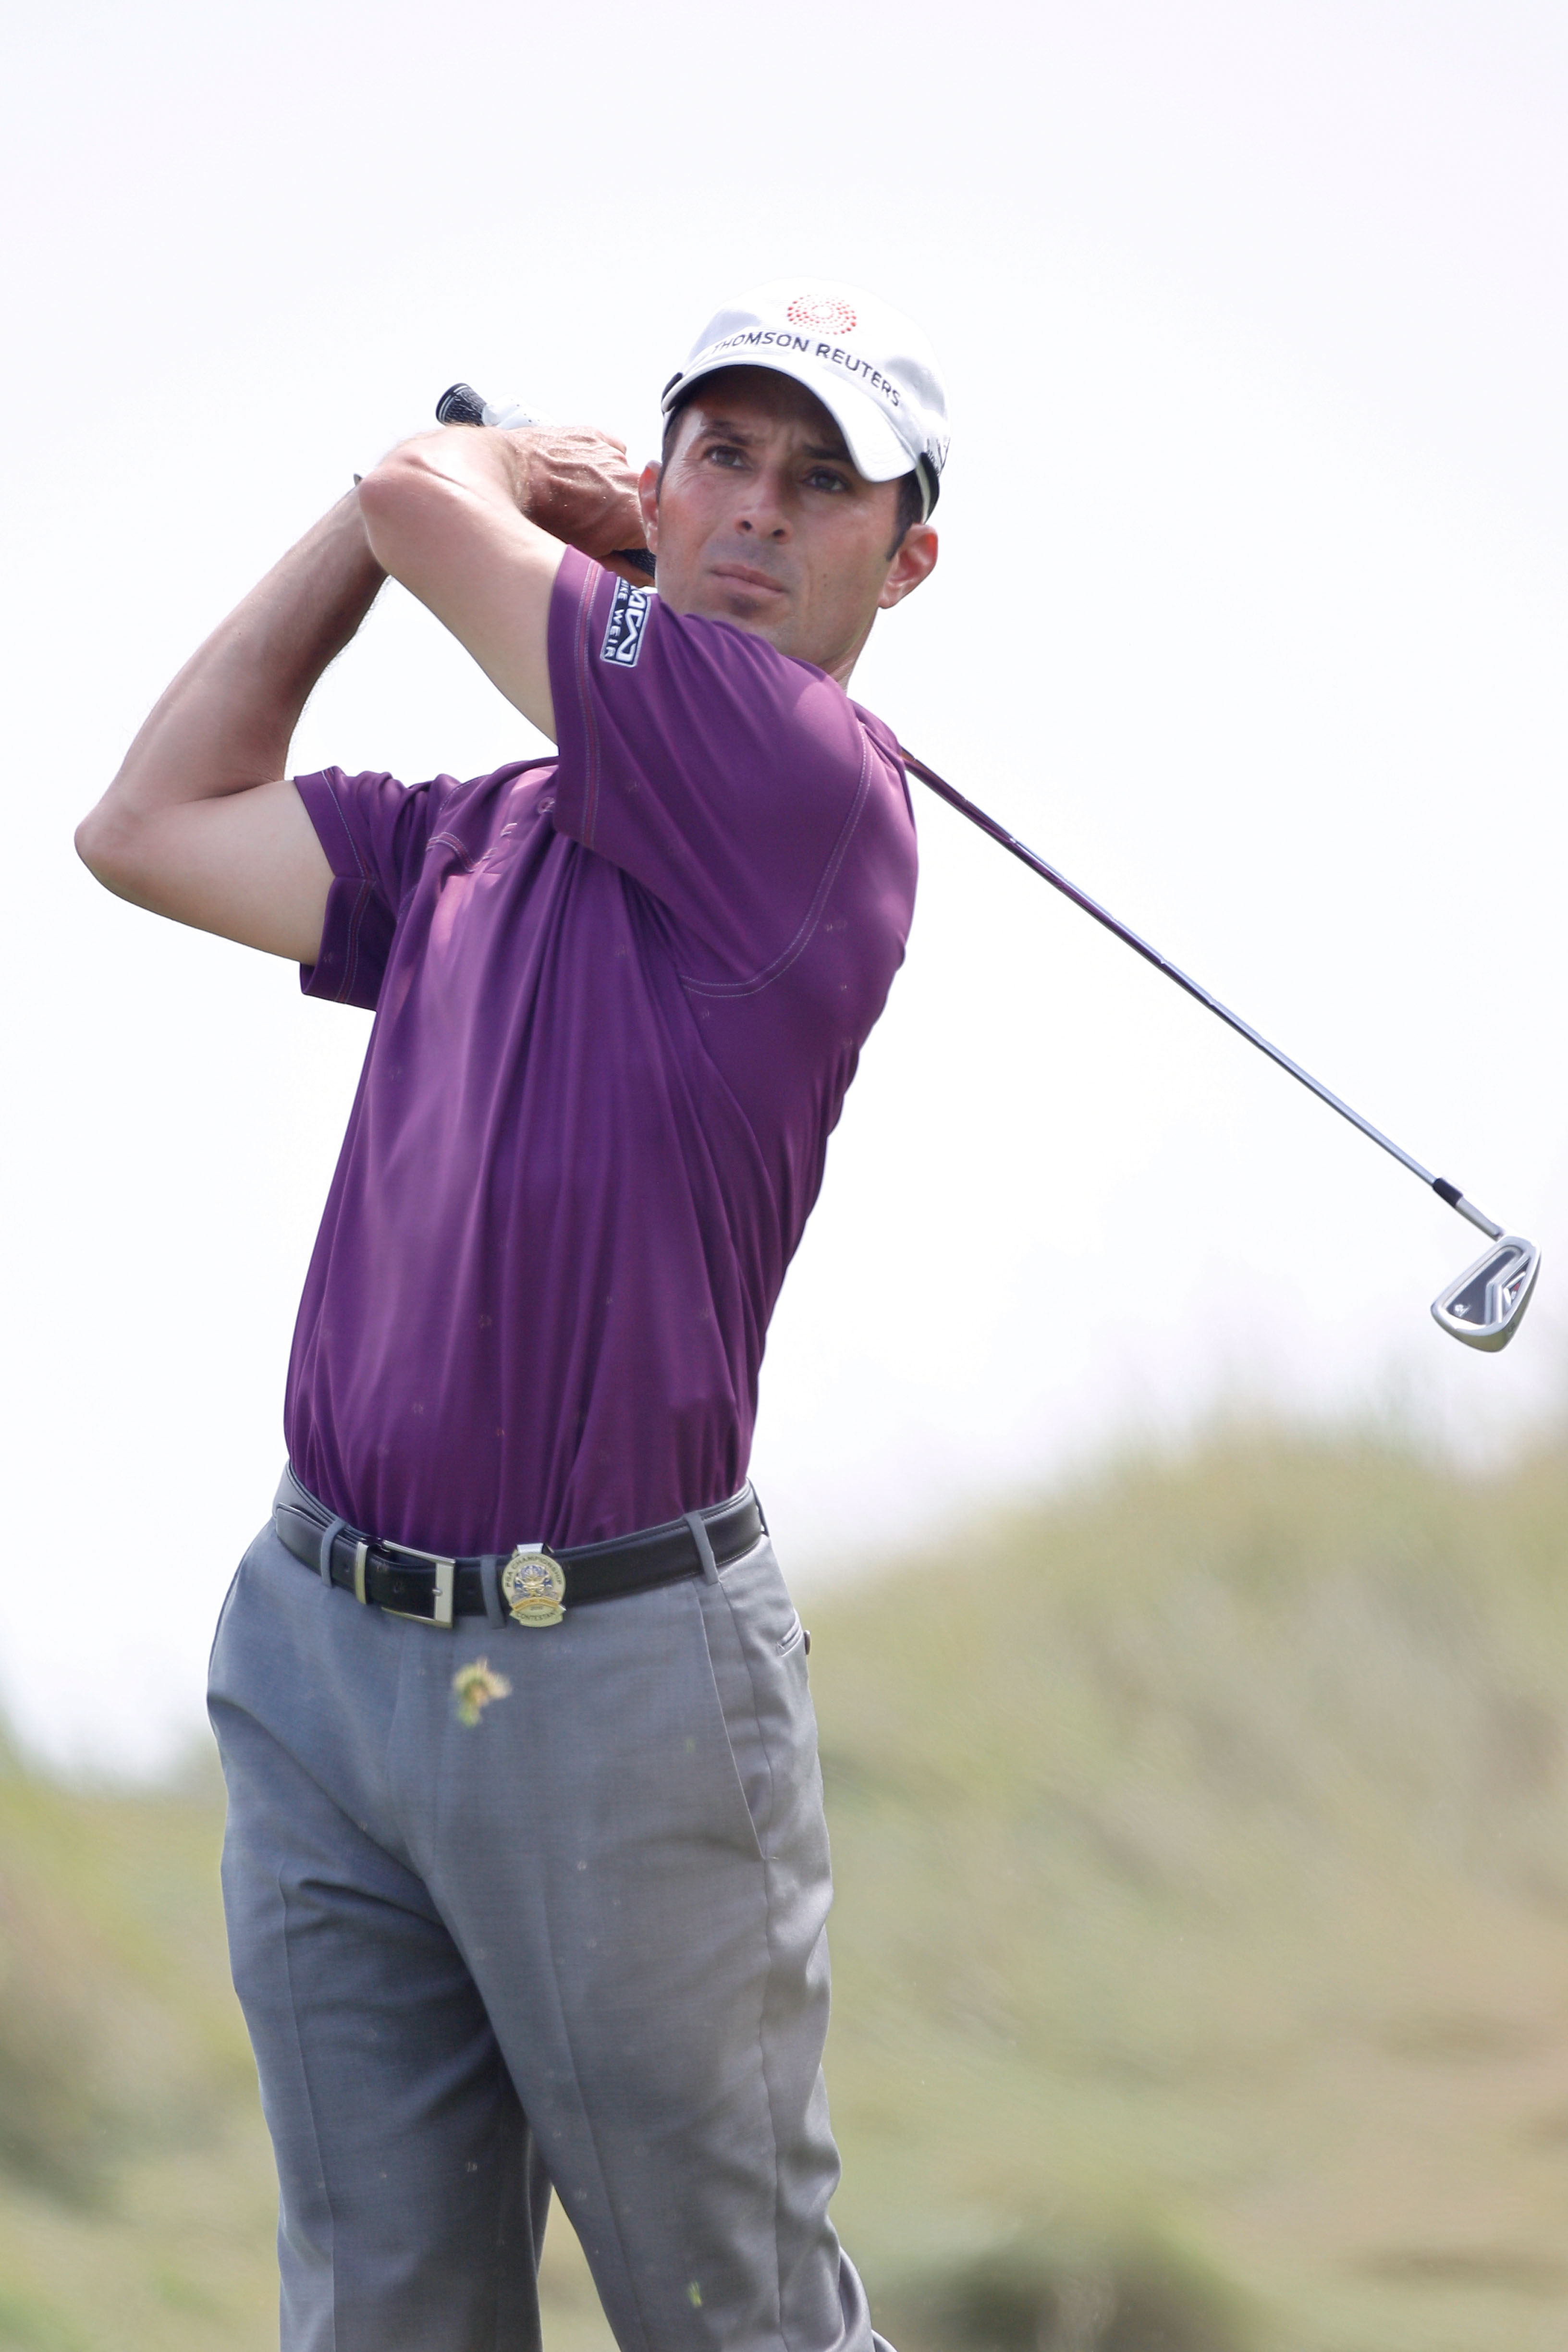 KOHLER, WI - AUGUST 10:  Mike Weir of Canada watches a shot during a practice round prior to the start of the 92nd PGA Championship on the Straits Course at Whistling Straits on August 10, 2010 in Kohler, Wisconsin.  (Photo by Chris Graythen/Getty Images)